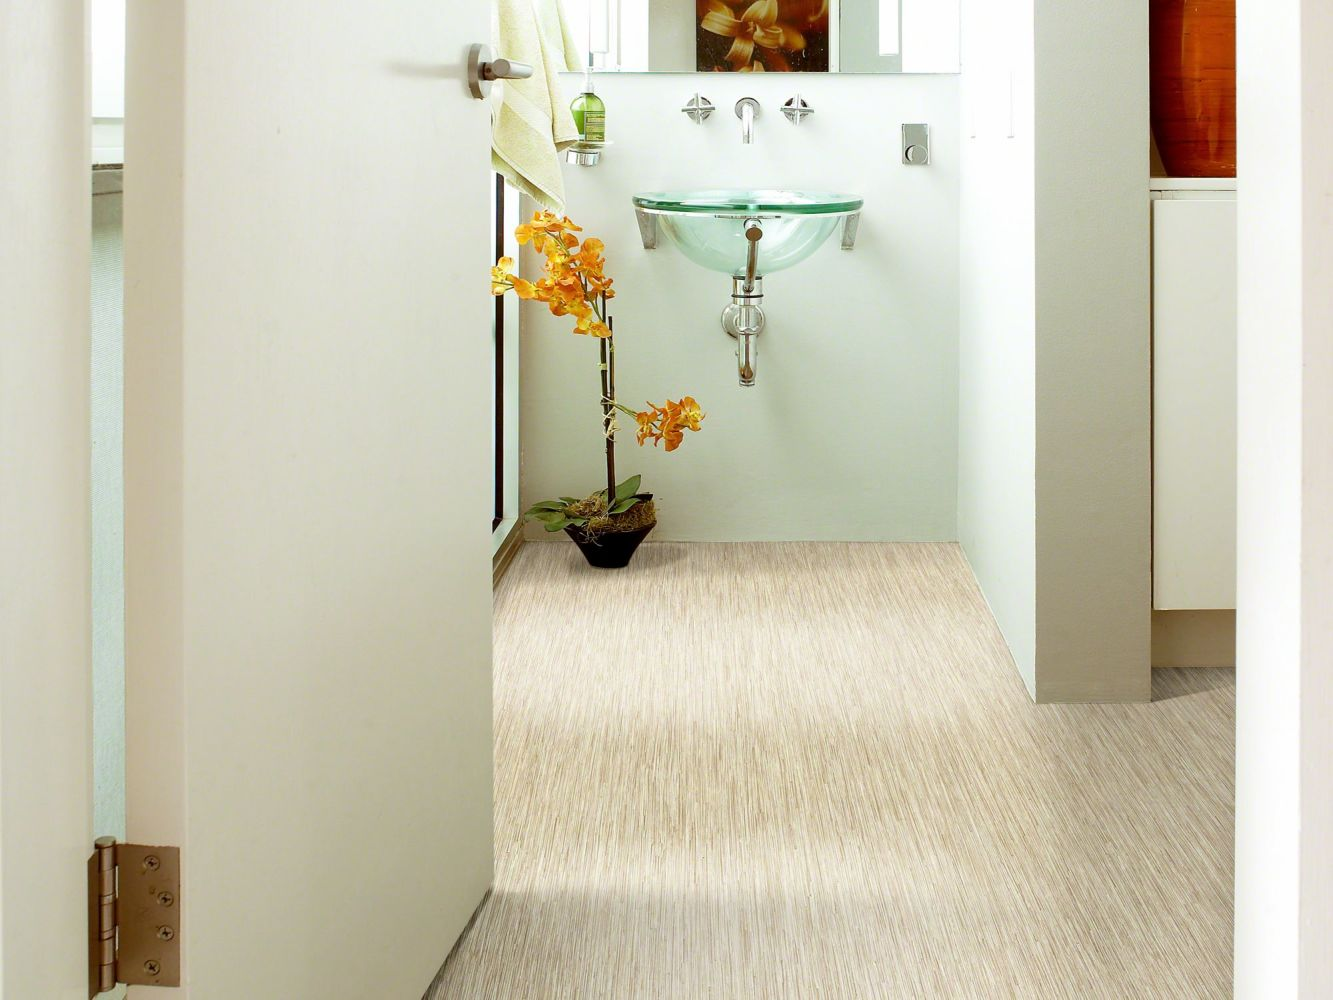 Shaw Floors Resilient Property Solutions Pro 12 Maryland 00115_VG062